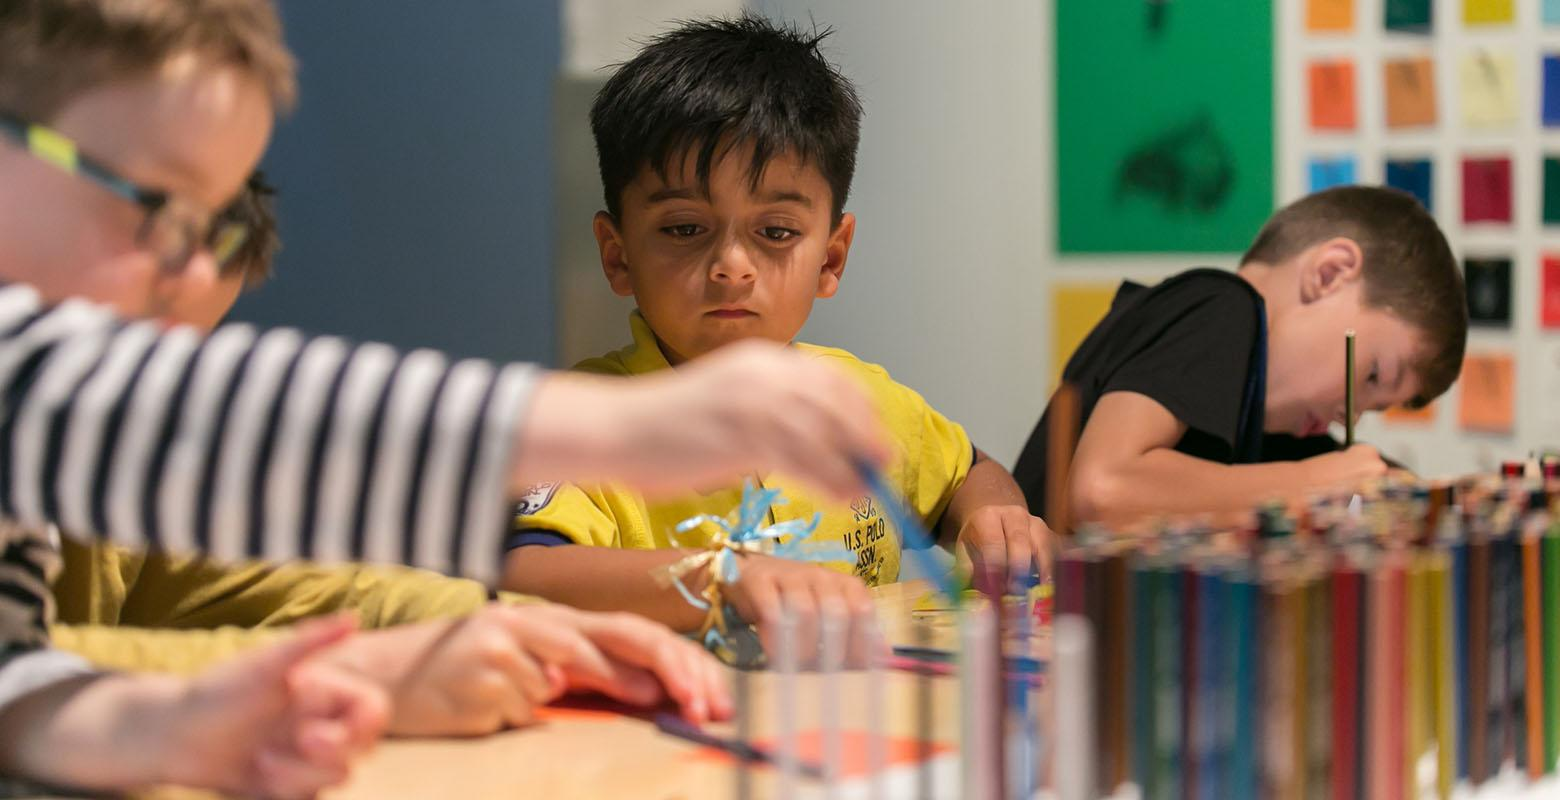 Children explore activities on offer at a table